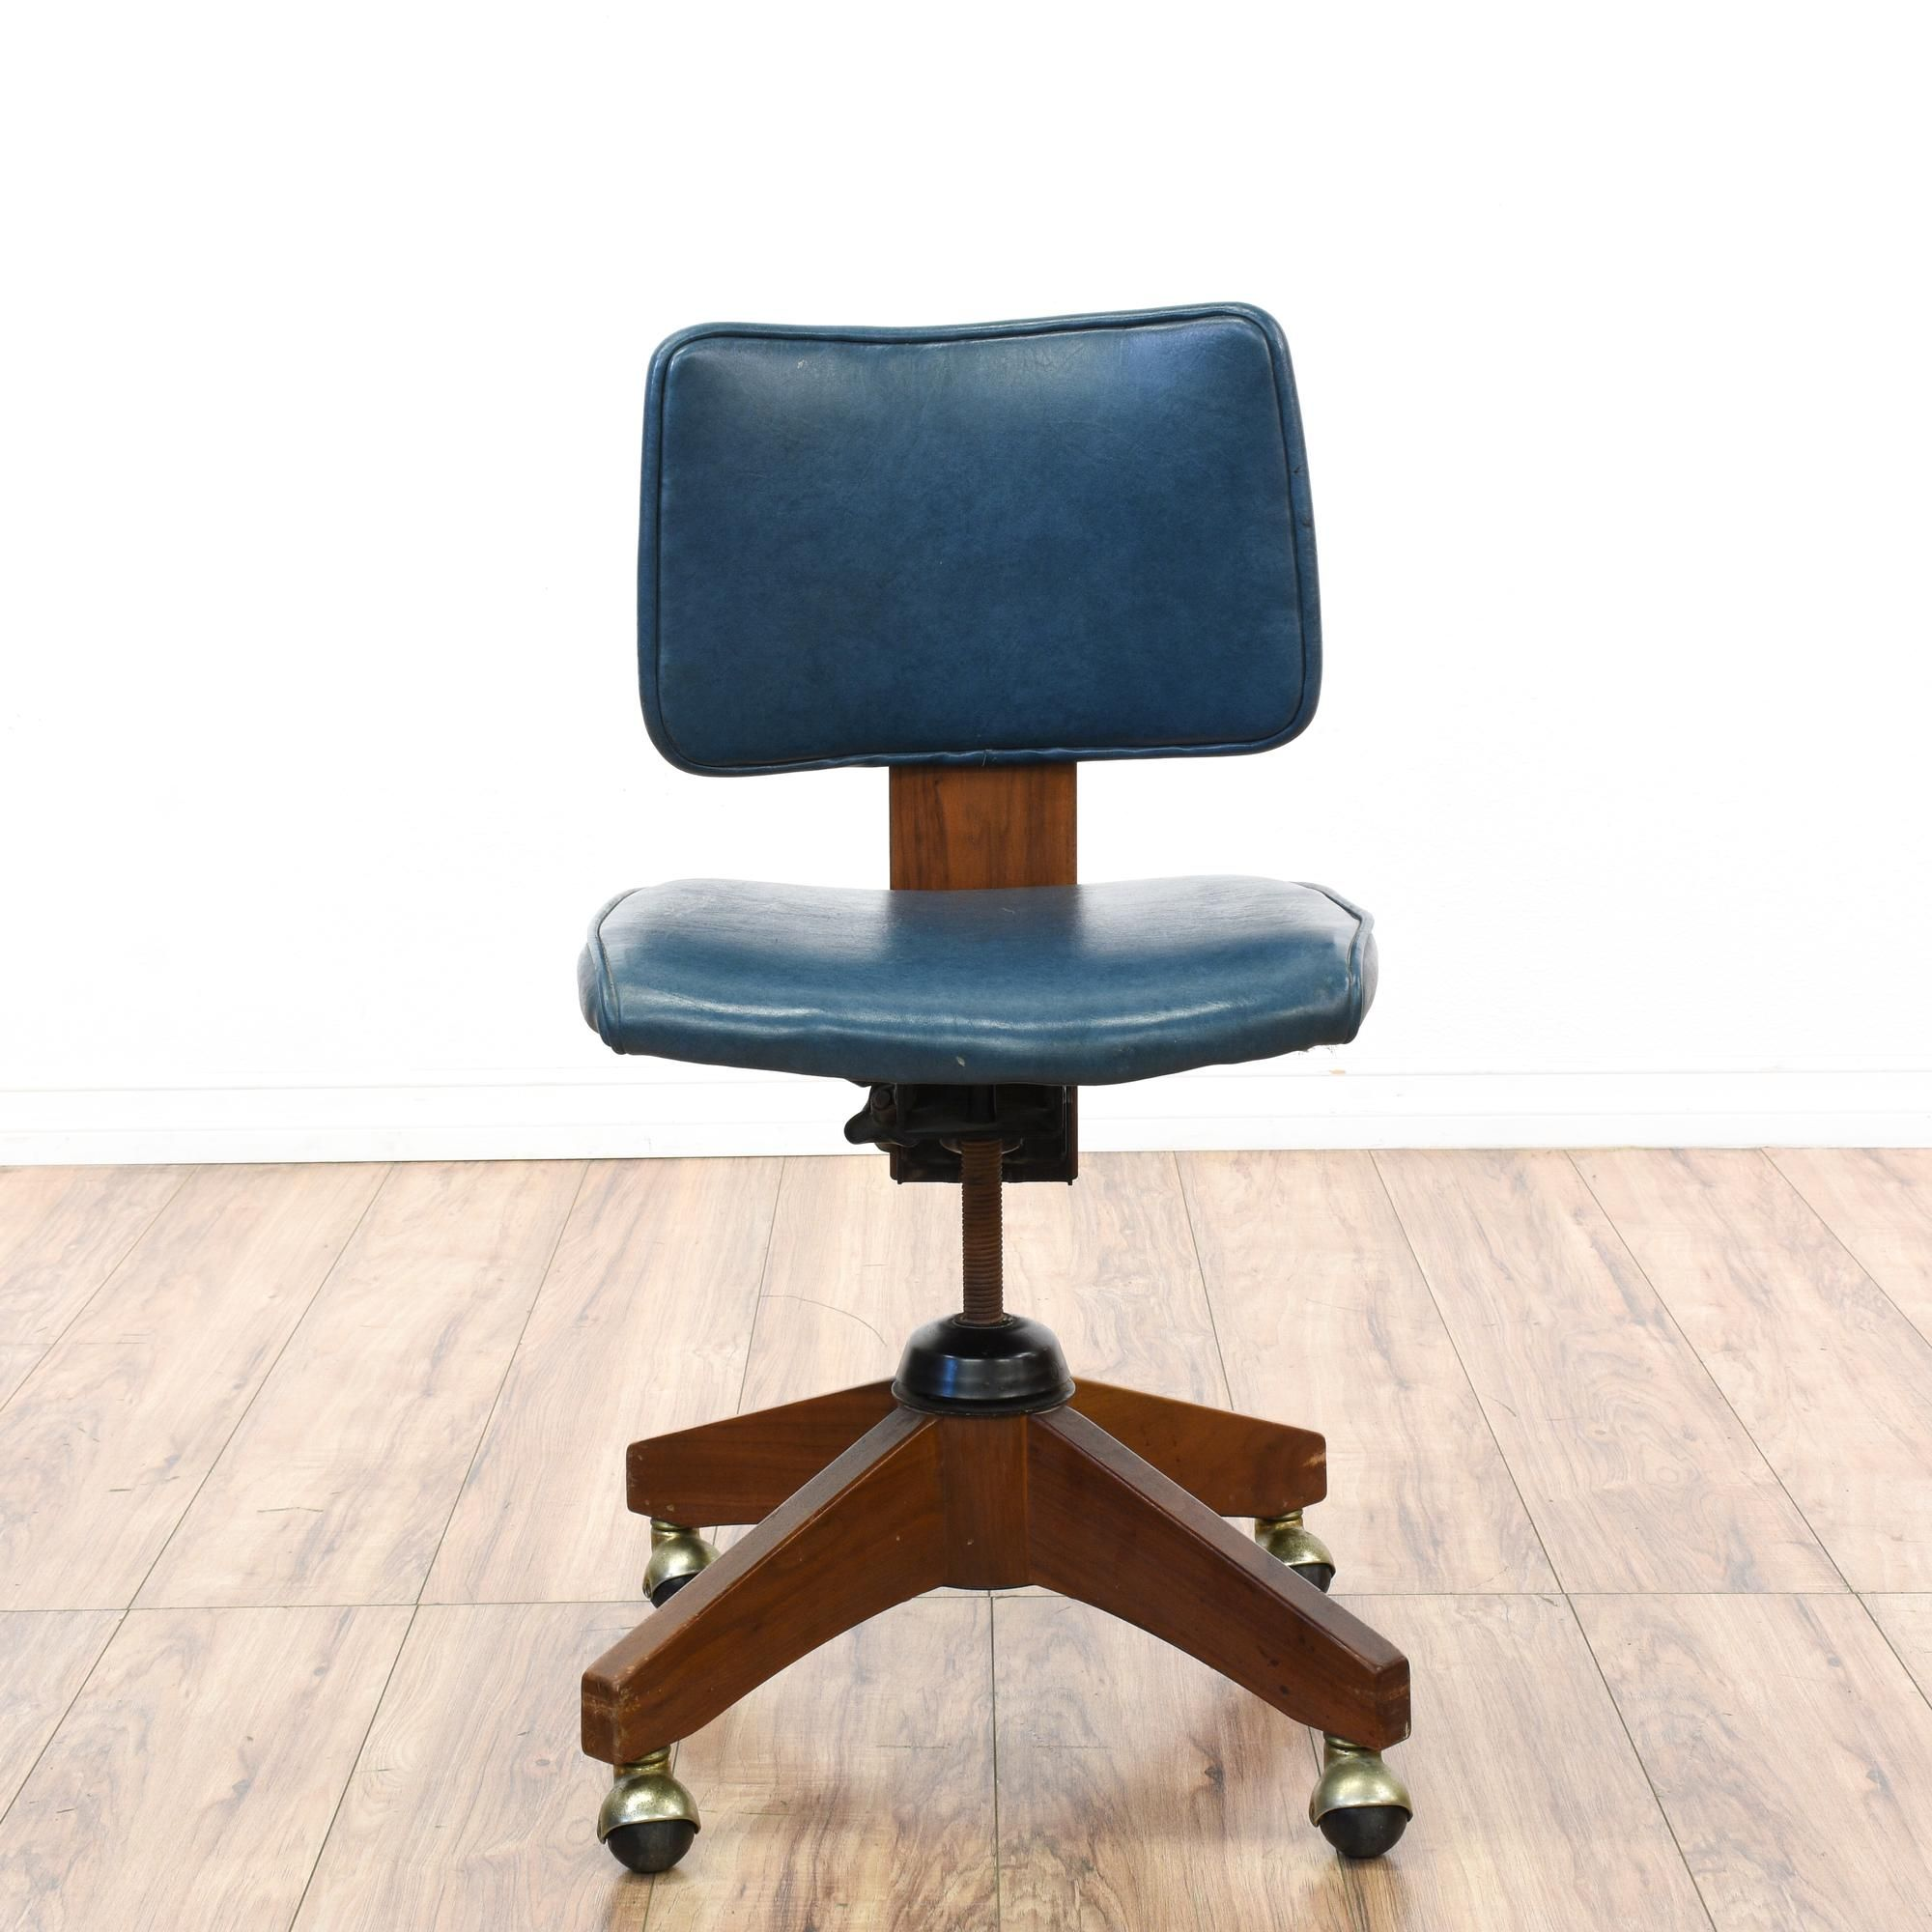 This retro office chair is featured in a solid wood with a glossy